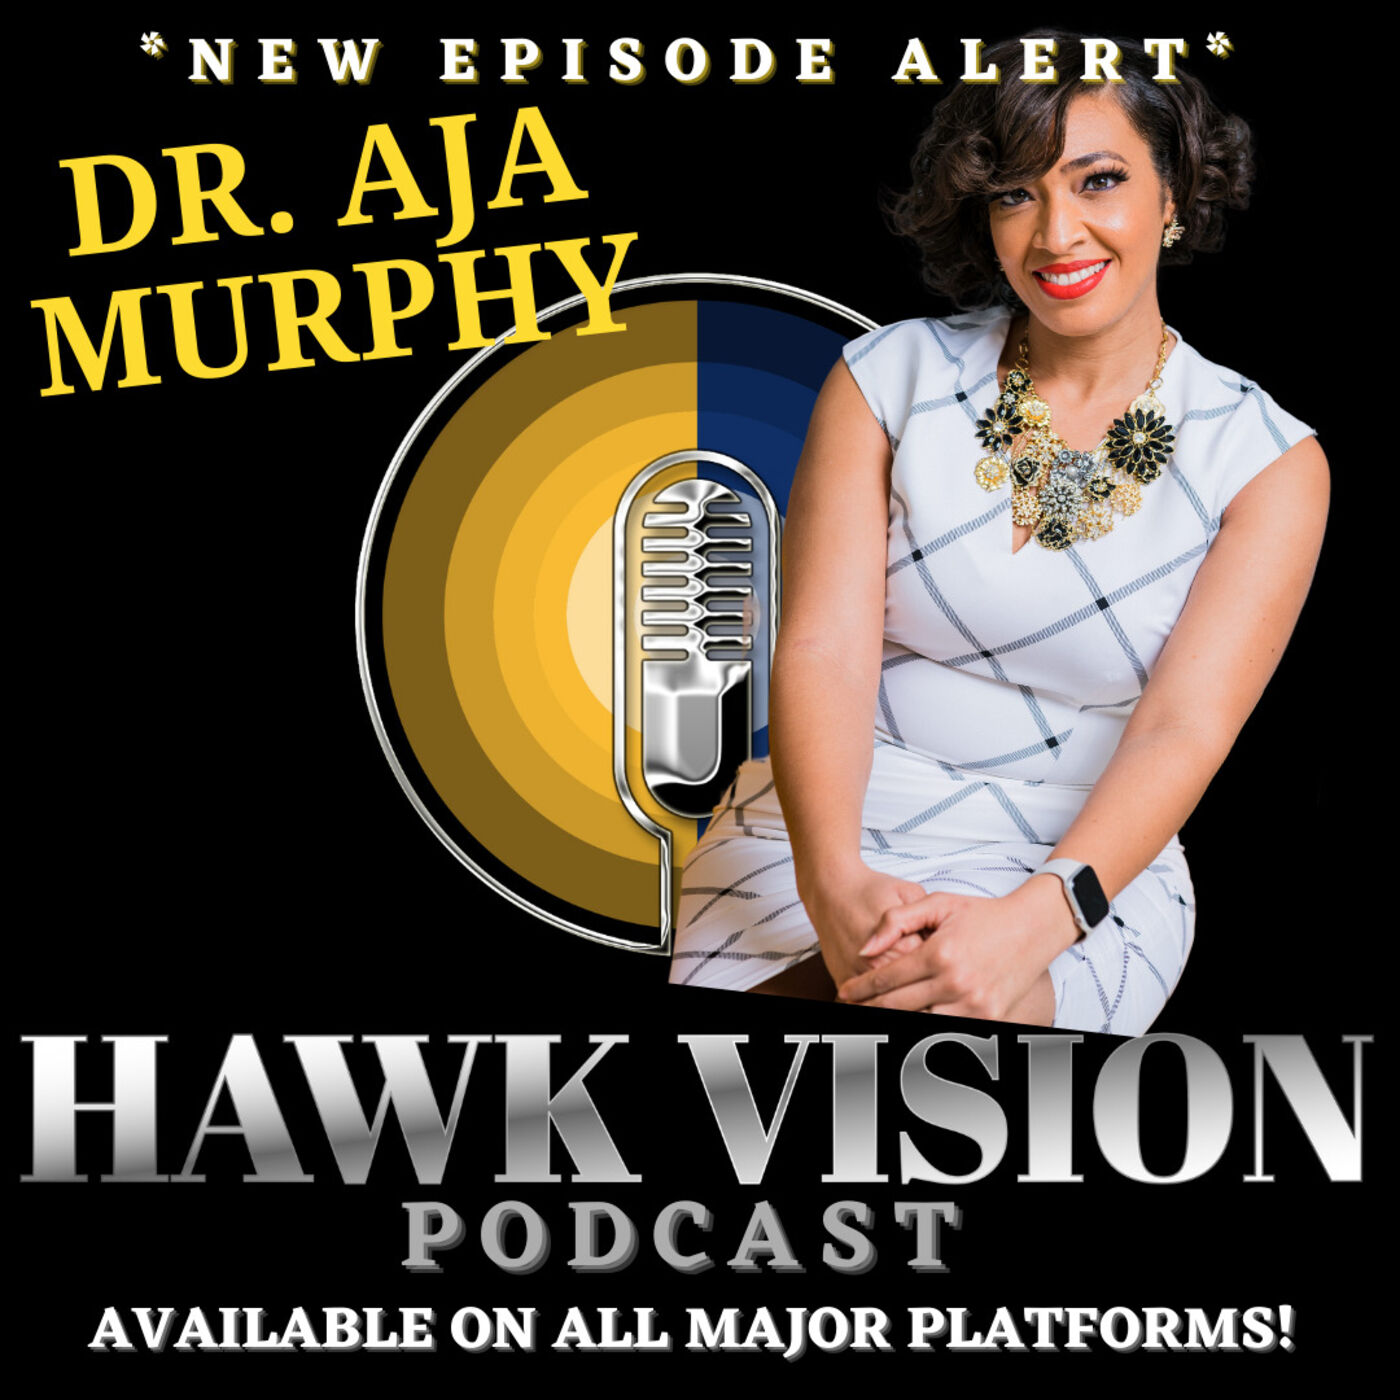 Dr. Aja Murphy- Why The Business of Healthcare Is In Her Veins